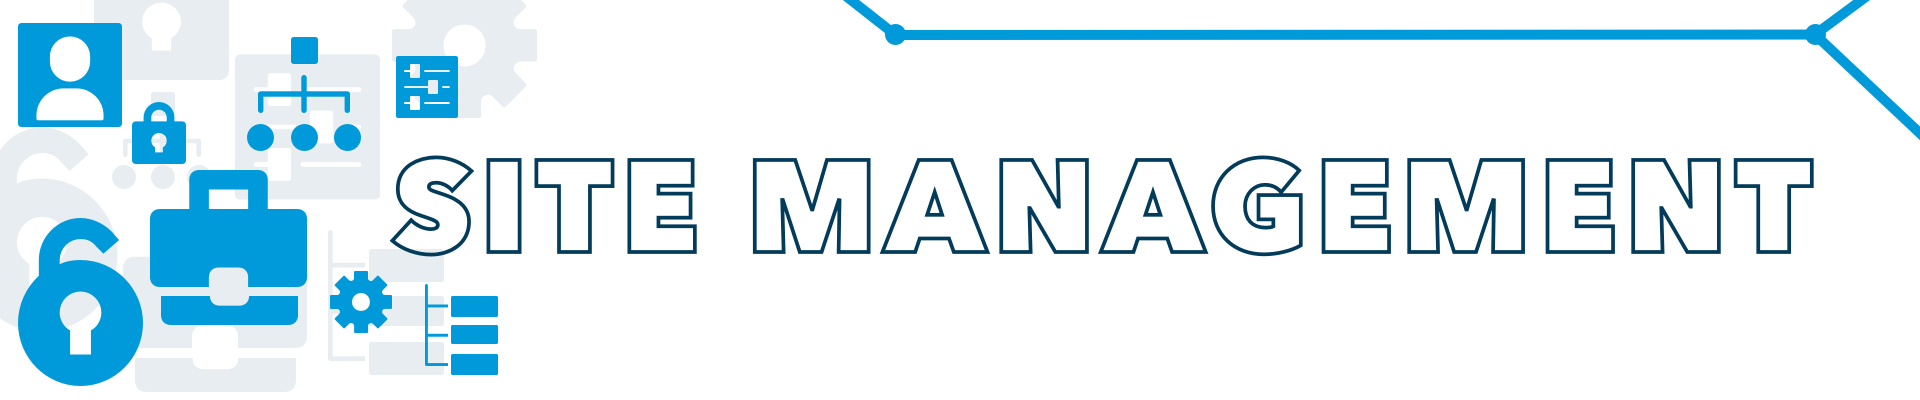 Site management banner with a profile silhouette icon, lock icons, gear icon, briefcase icon, toggle button icon, and hierarchy icons